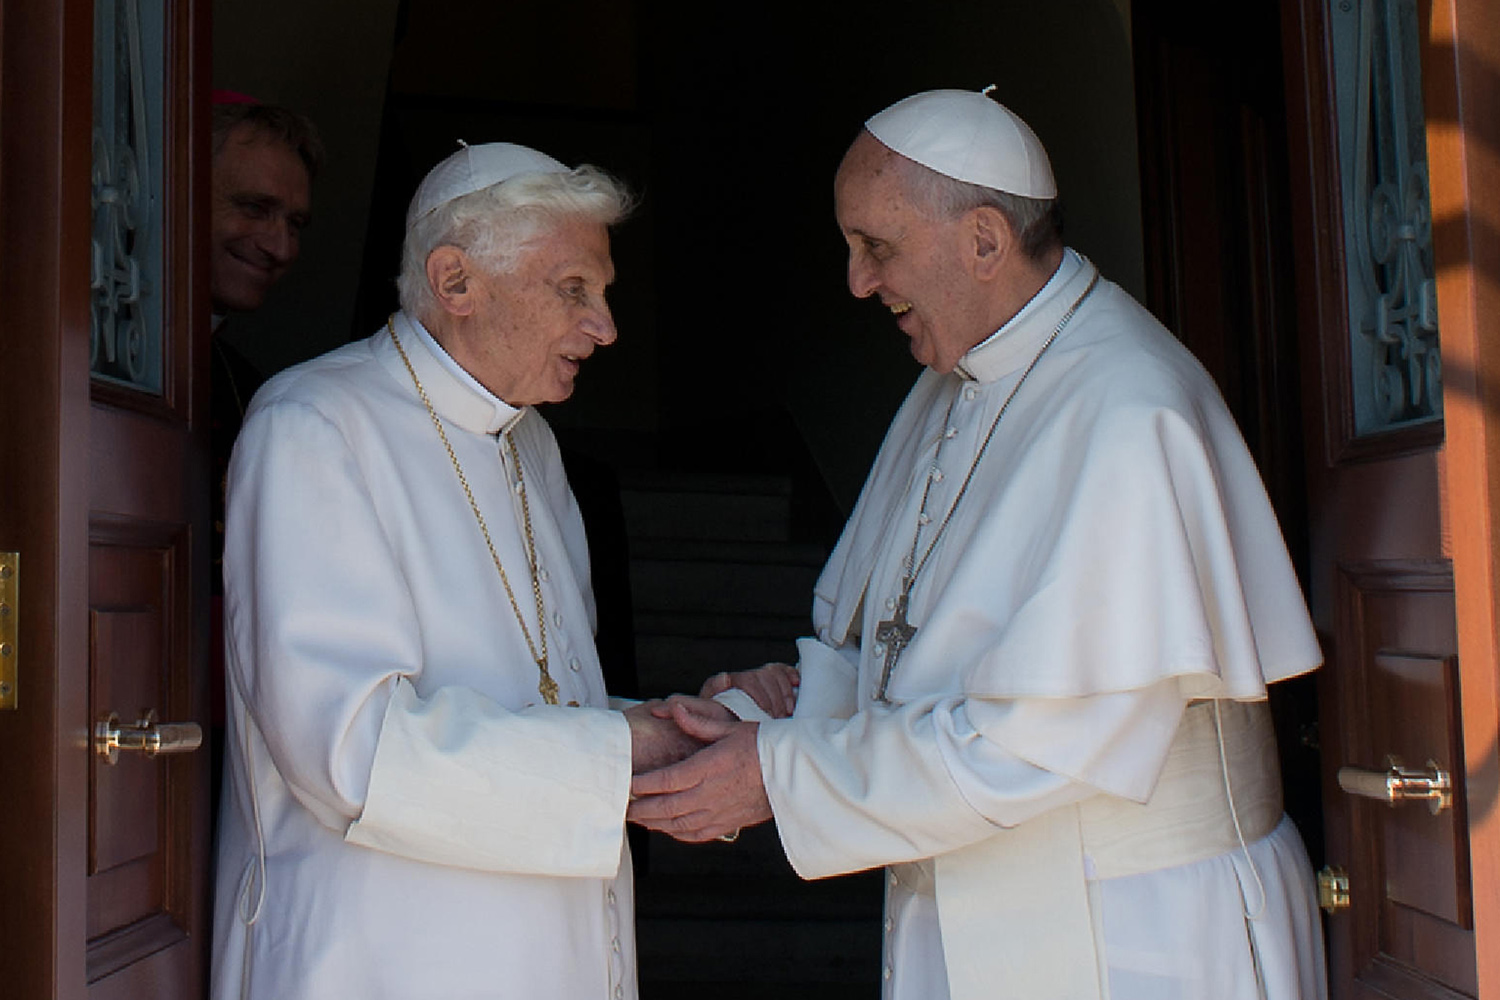 Welcoming Pope emeritus Benedict XVI as he returns to the Vatican from the pontifical summer residence of Castel Gandolfo.